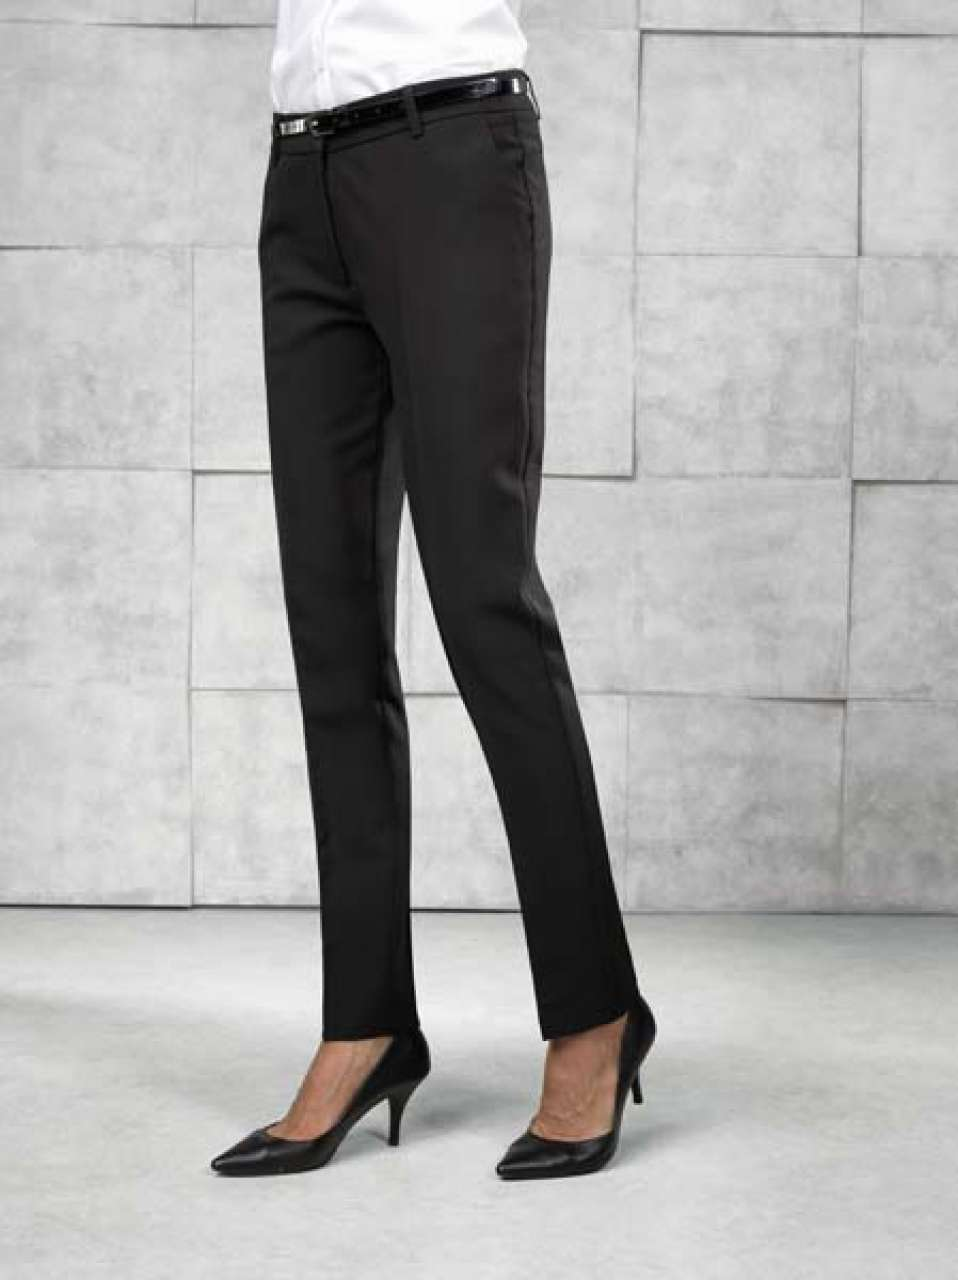 LADIES' LONG TAPERED LEG TROUSER